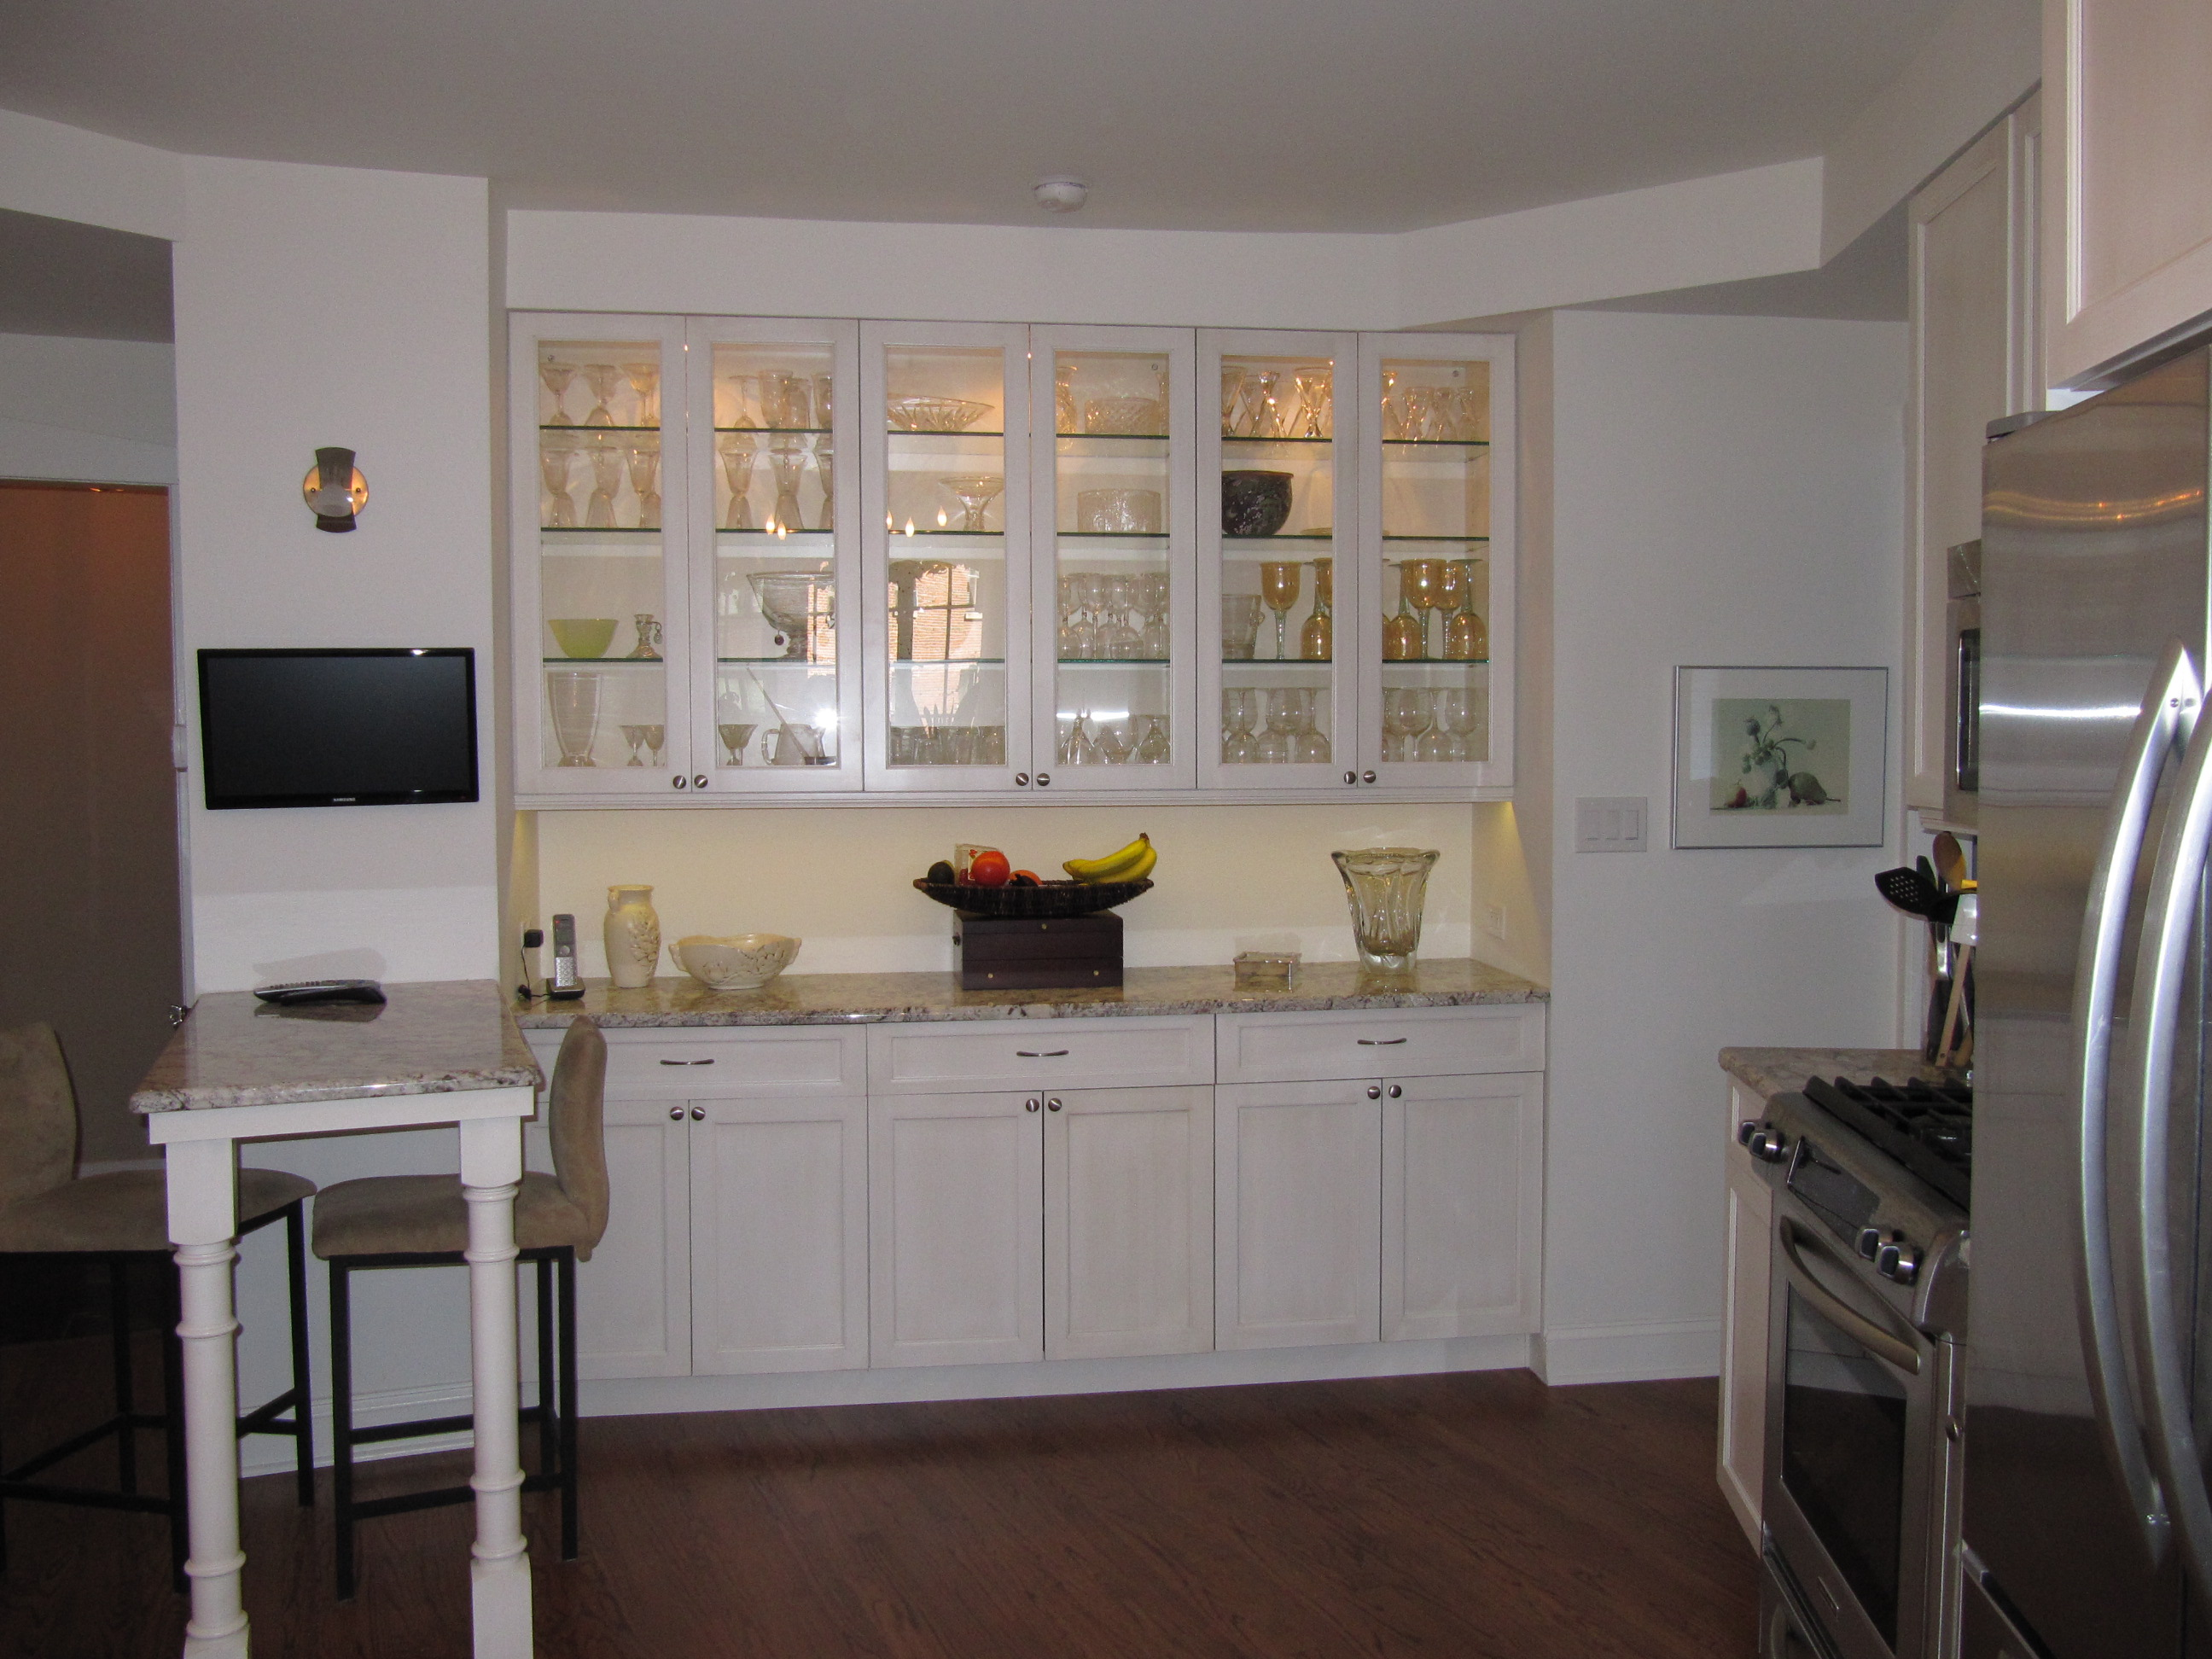 The Original Butleru0027s Pantry Was Integrated Into The Triangular Shaped  Kitchen With Beautifully Lit Glass Upper